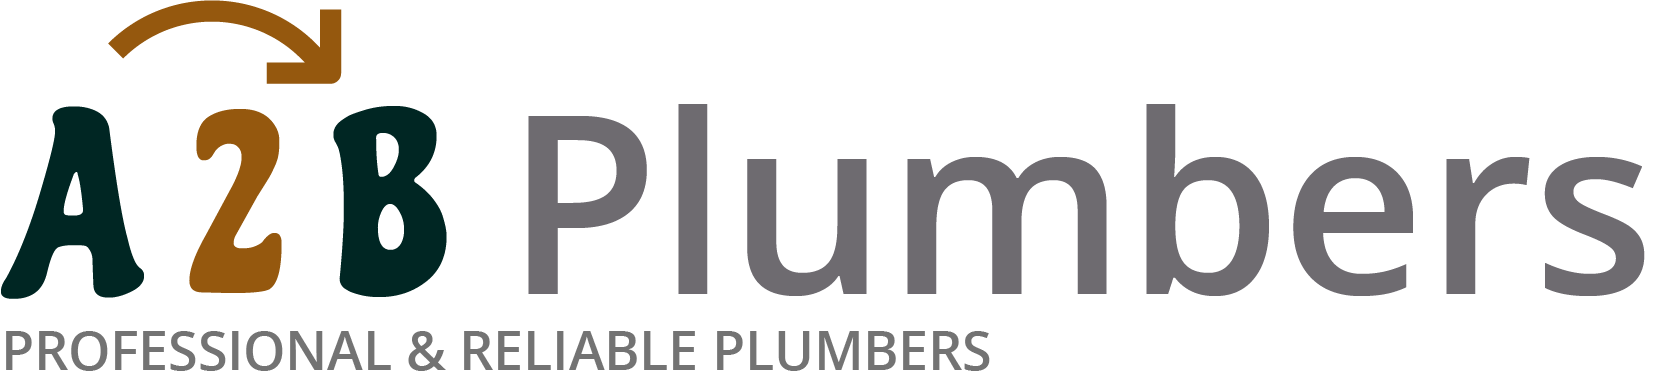 If you need a boiler installed, a radiator repaired or a leaking tap fixed, call us now - we provide services for properties in Ealing and the local area.